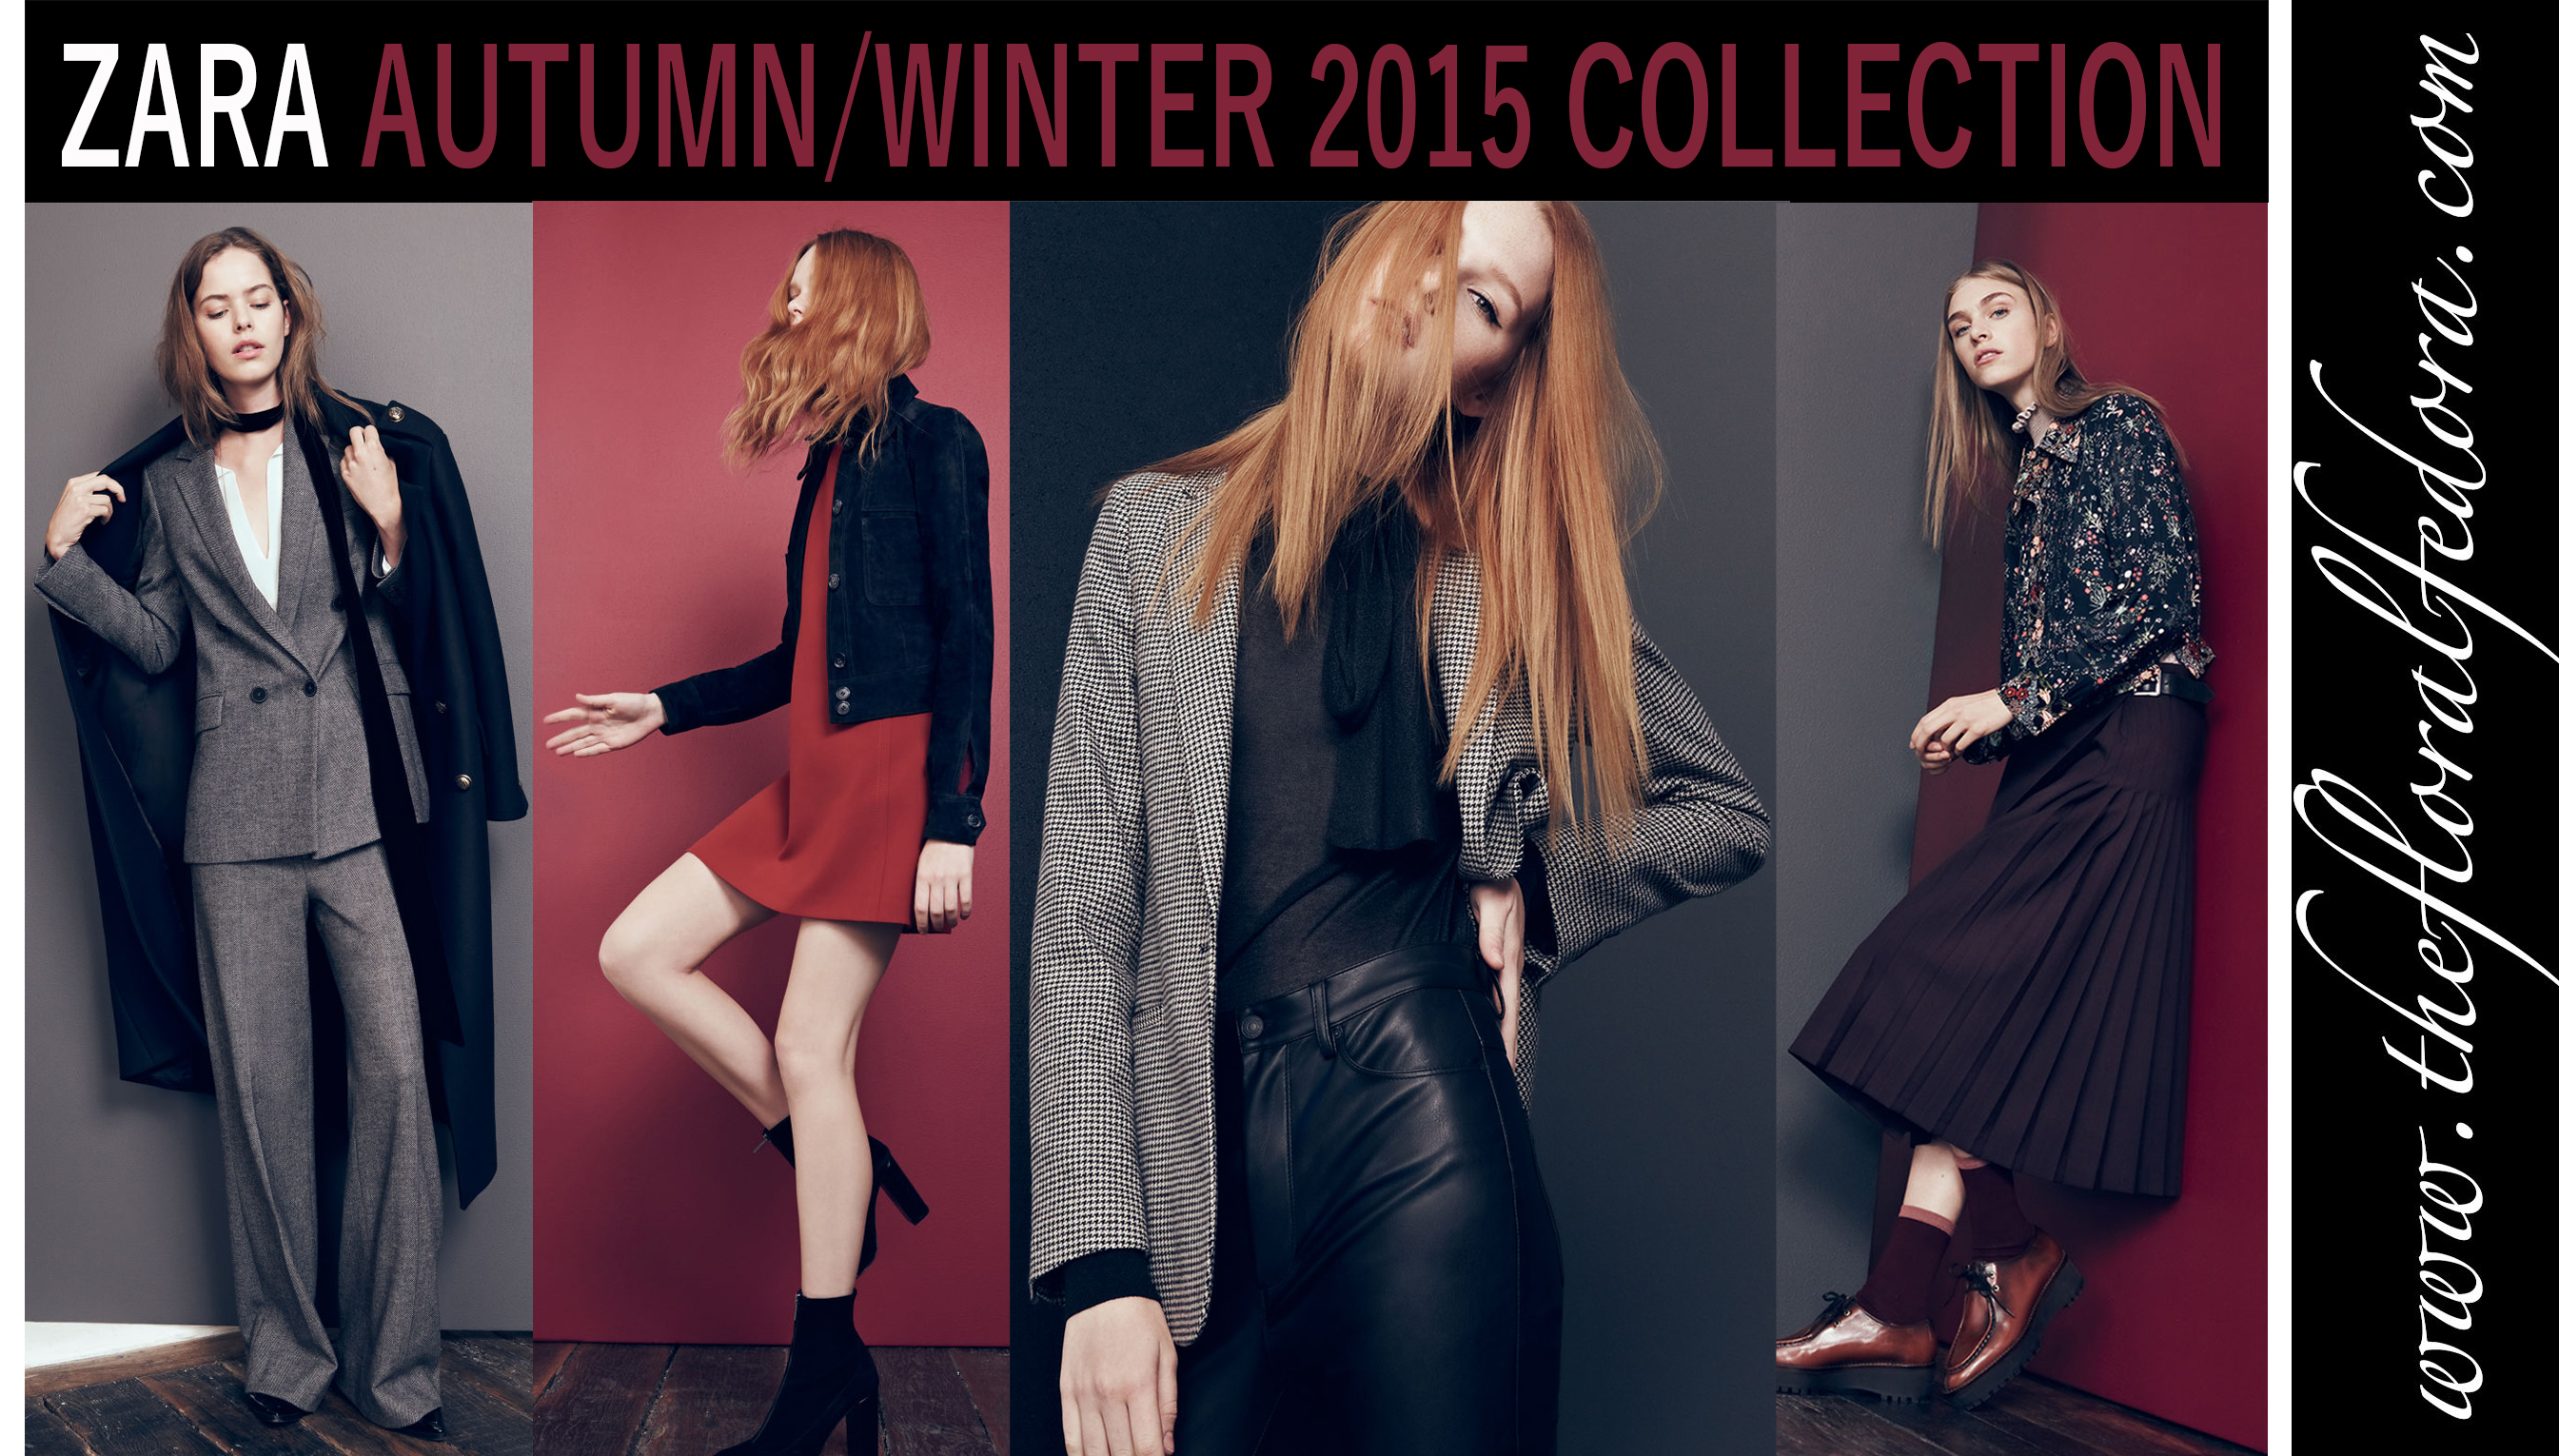 Zara Autumn/Winter 2015 Collection